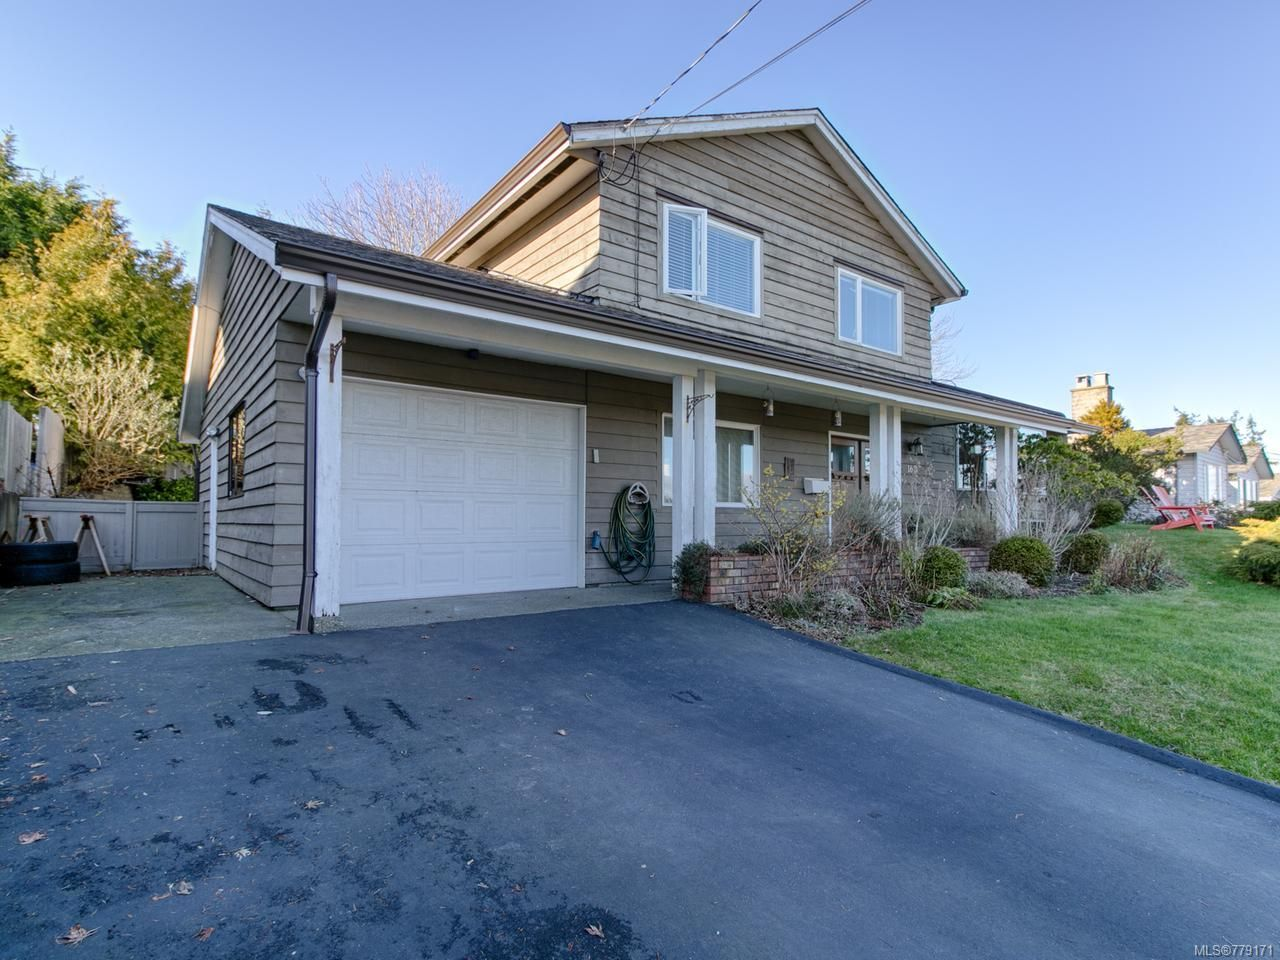 Main Photo: 168 S McCarthy St in CAMPBELL RIVER: CR Campbell River Central House for sale (Campbell River)  : MLS®# 779171